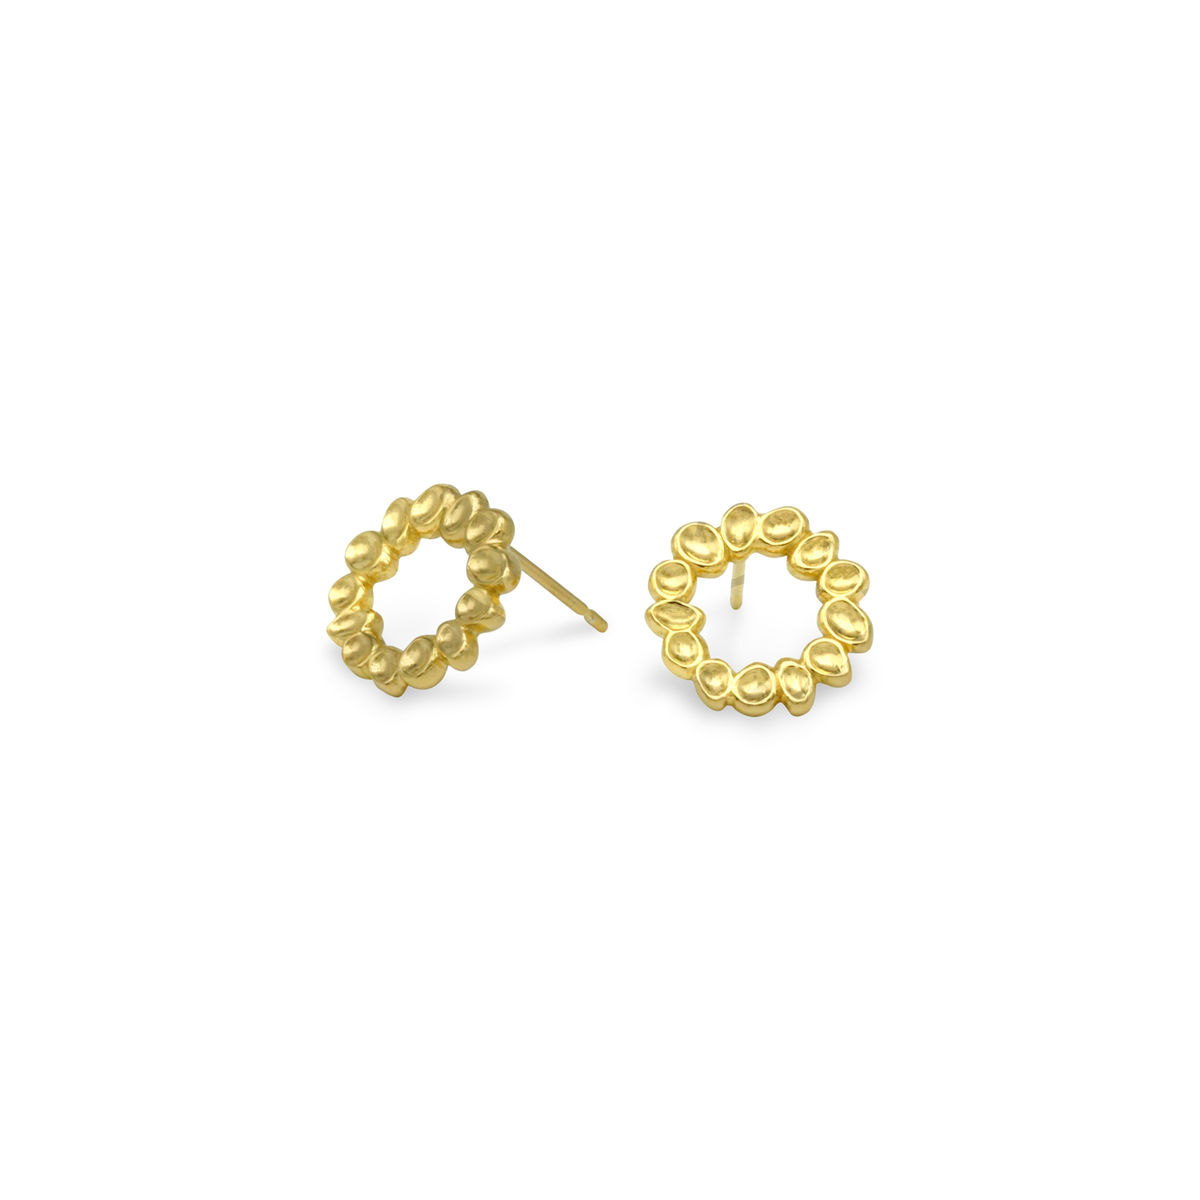 SHIMMER mini circle stud earrings - gold plated sterling silver - product images  of